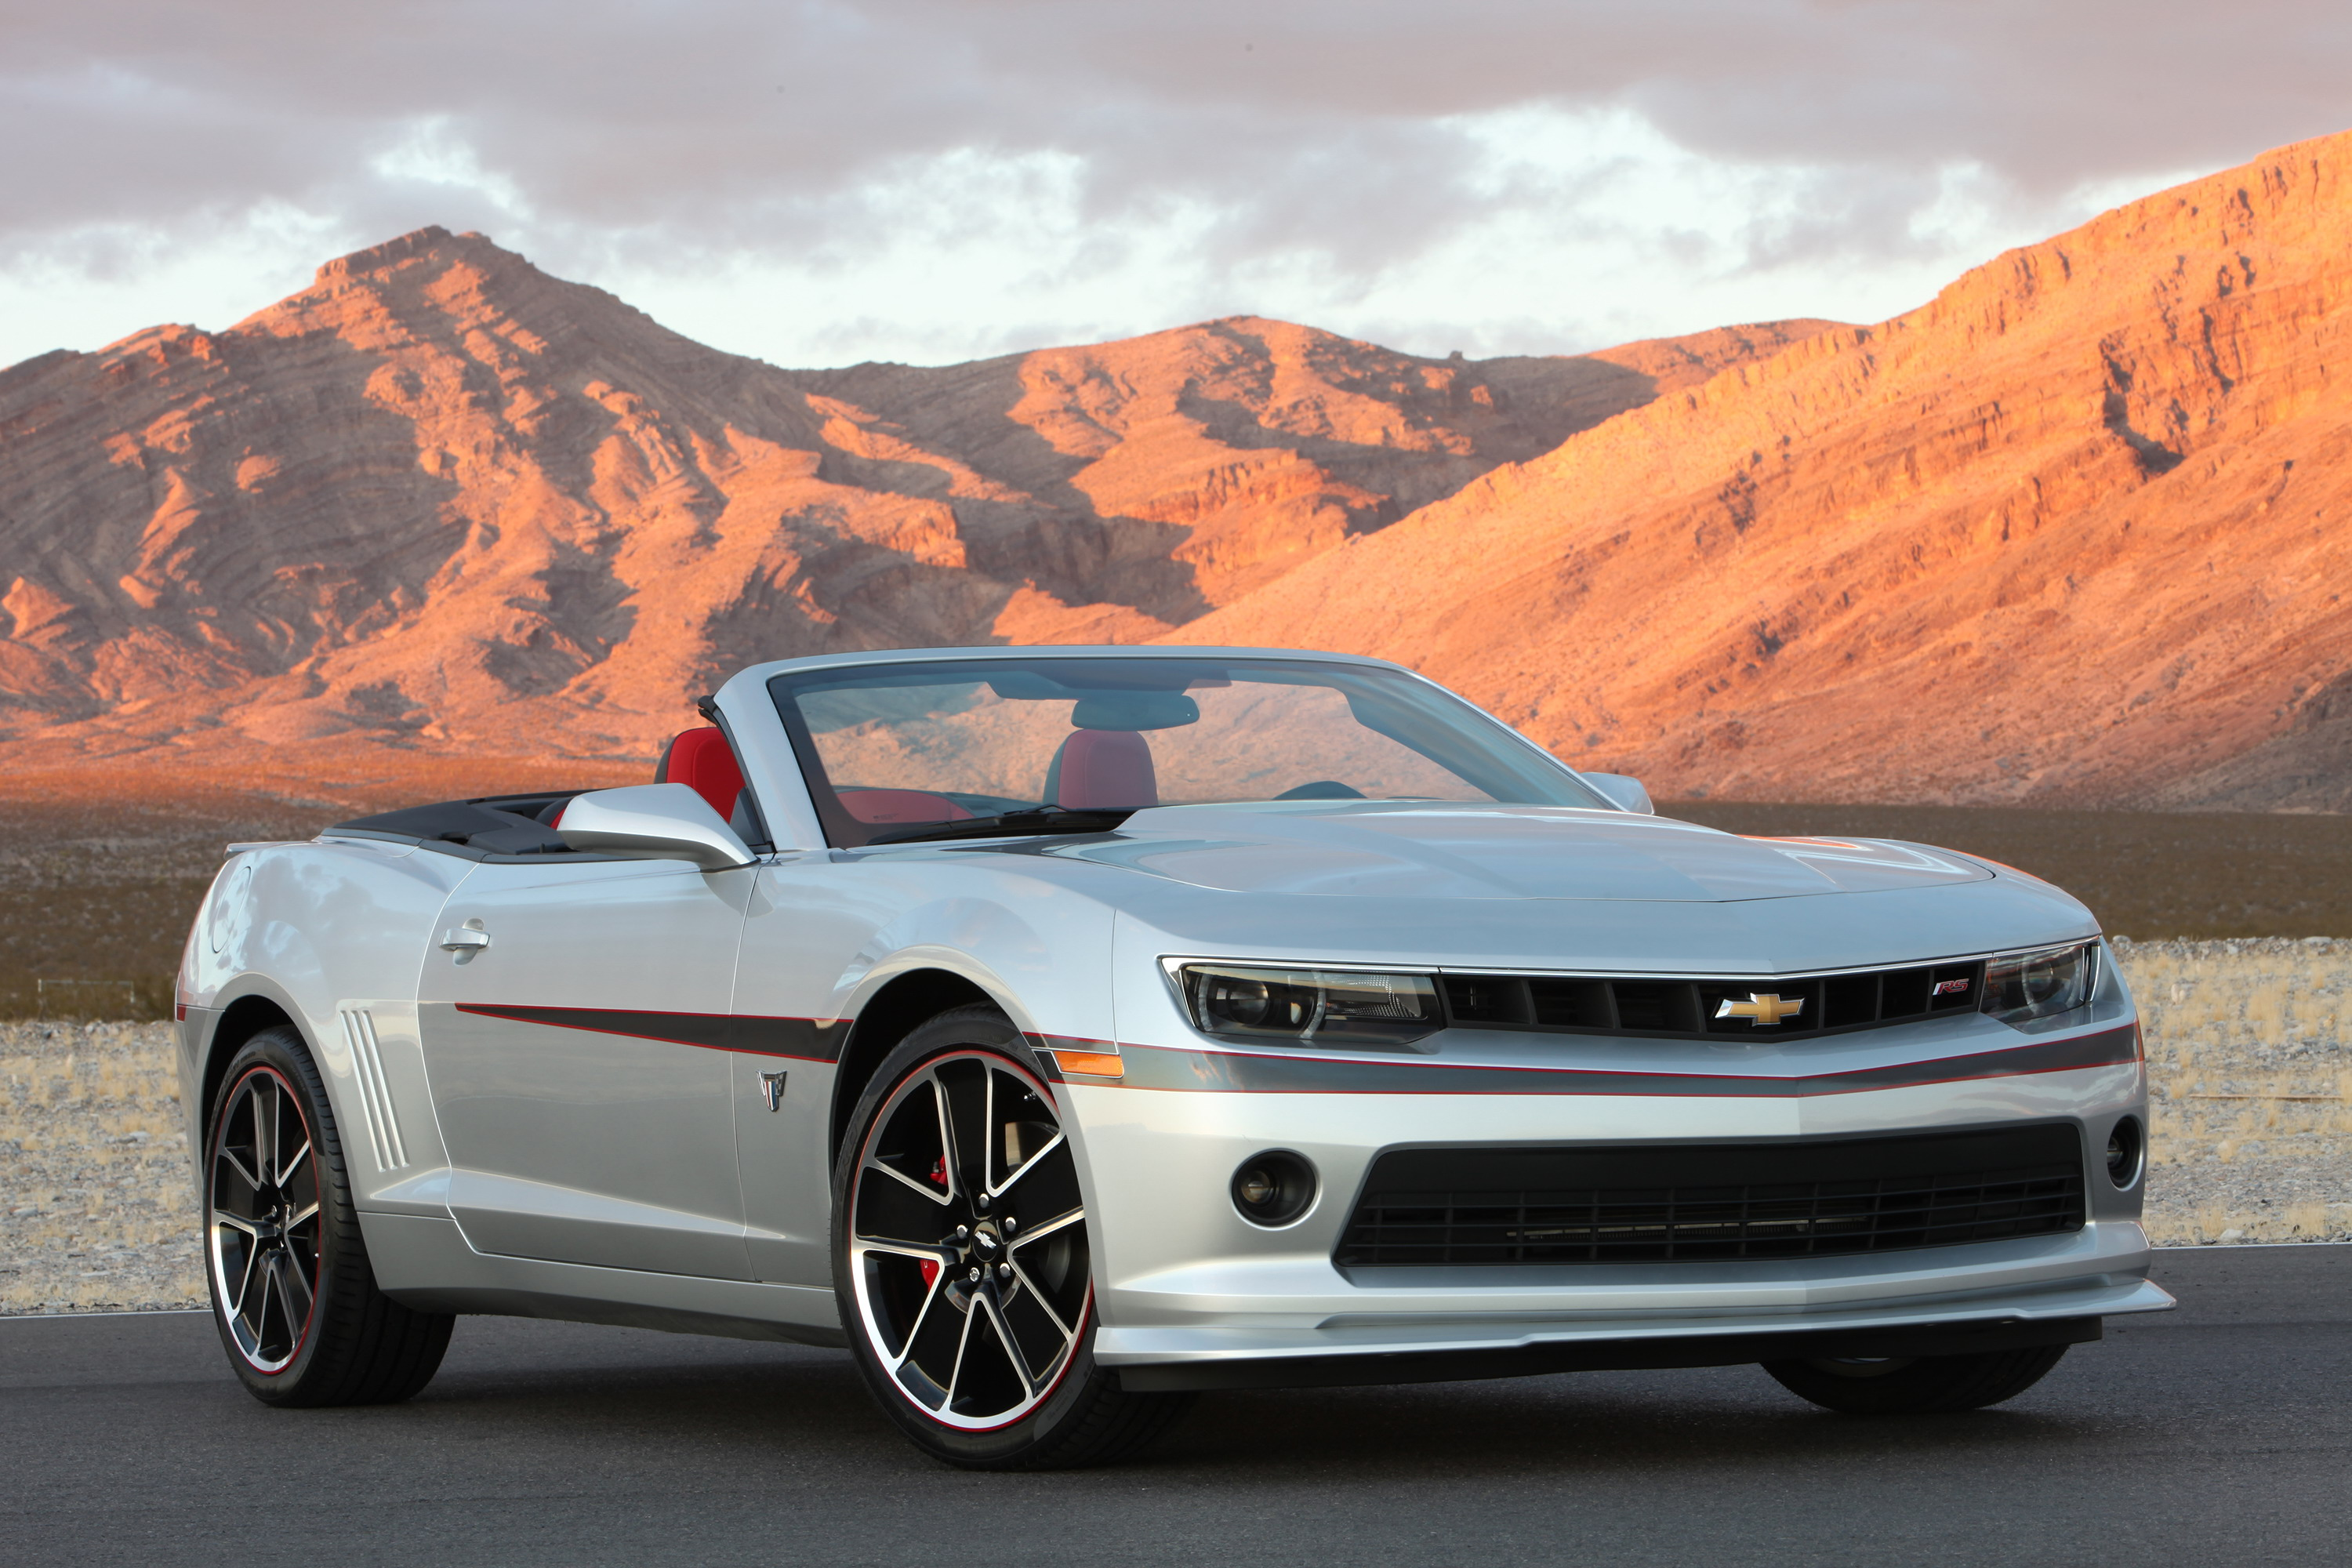 2015 chevrolet camaro commemorative edition review - top speed